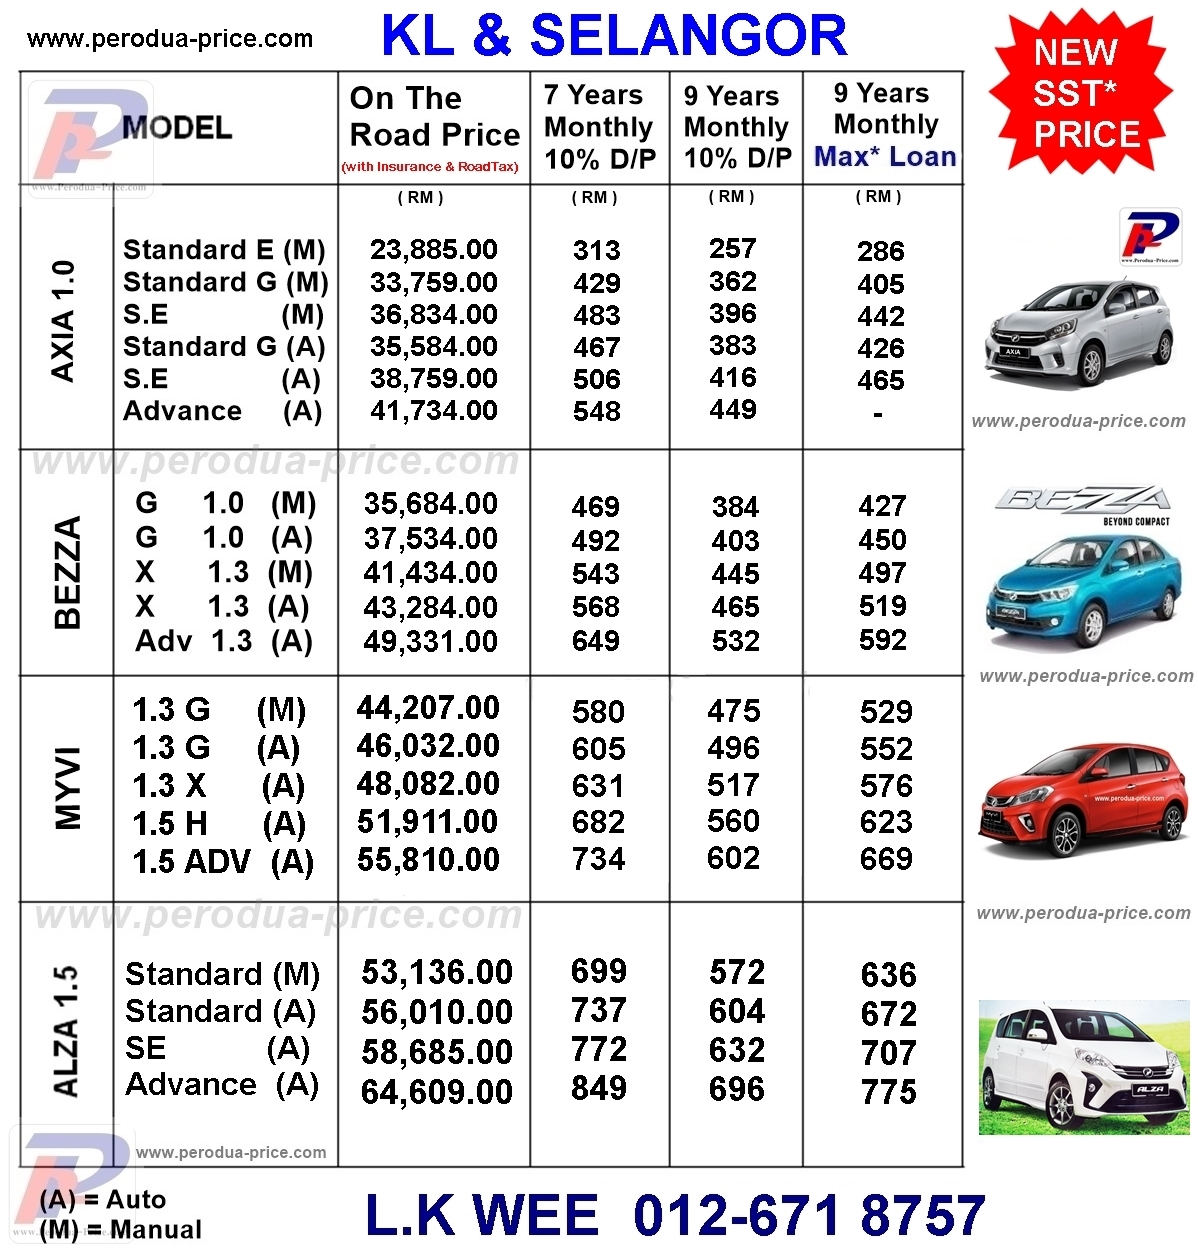 Perodua Promotion KL And Selangor - 012 671 8757: Price List